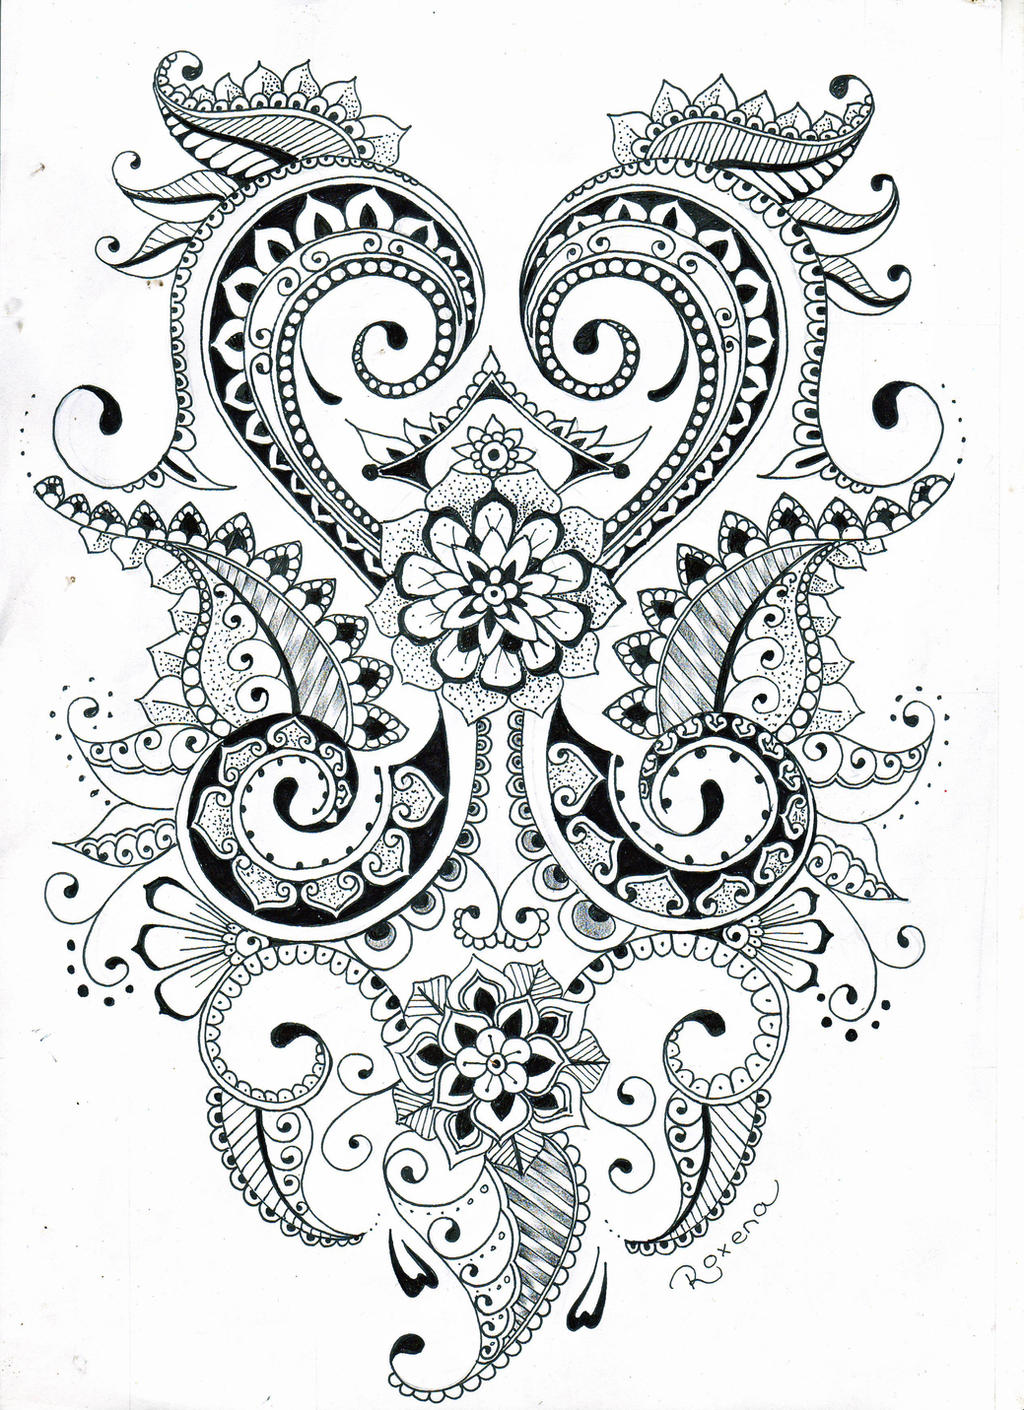 Henna Design Line Art : Mehndi flower design by roxenabernardi on deviantart